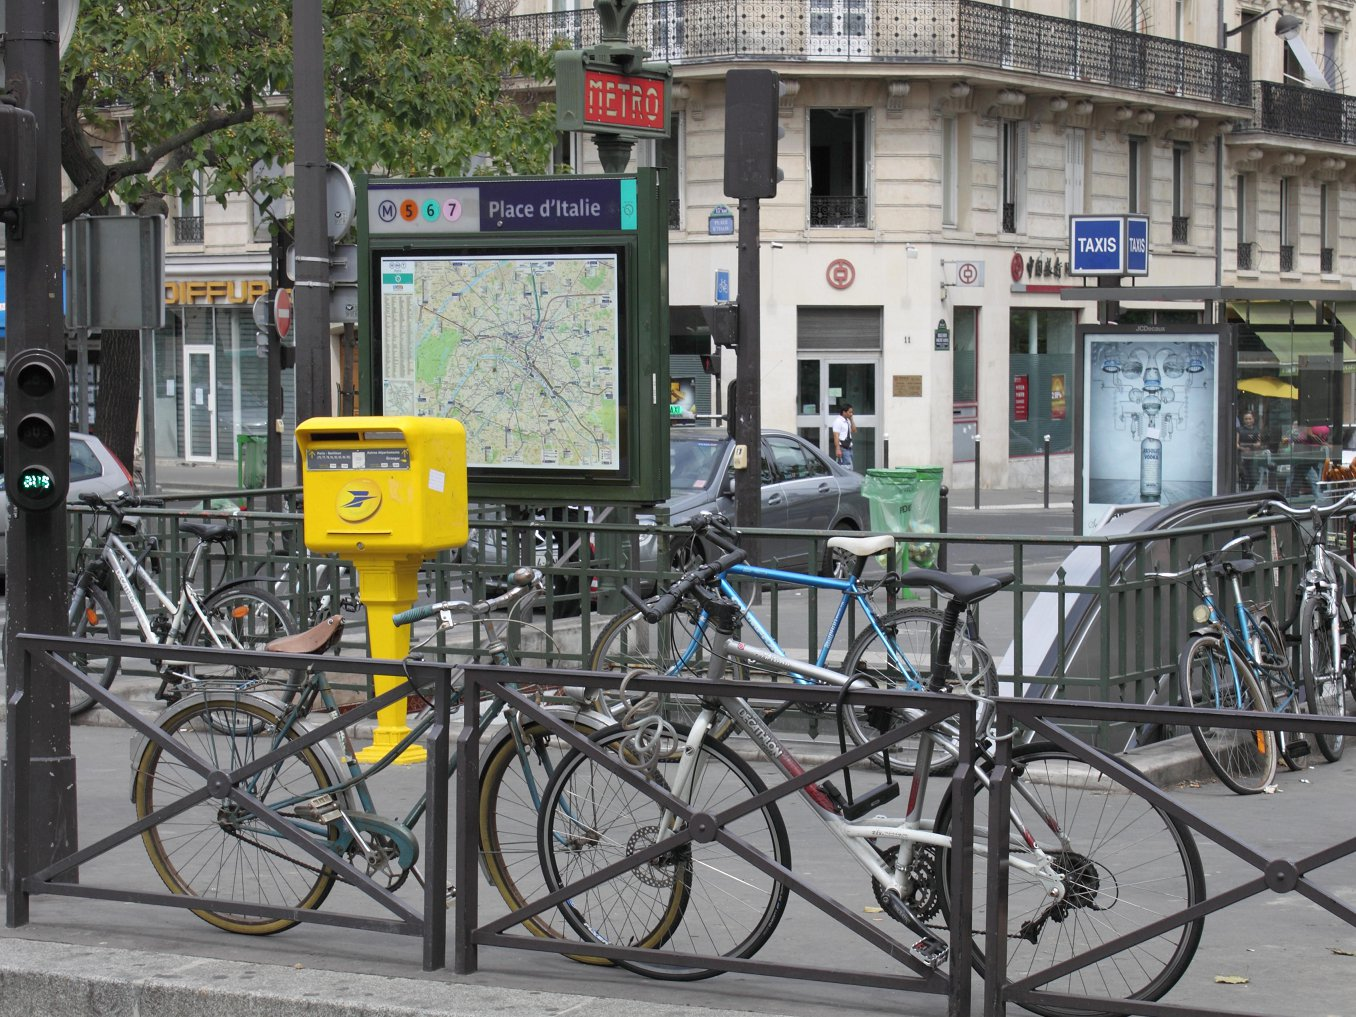 Le Meilleur France Travel Ideas The Paris Metro Ce Mois Ci